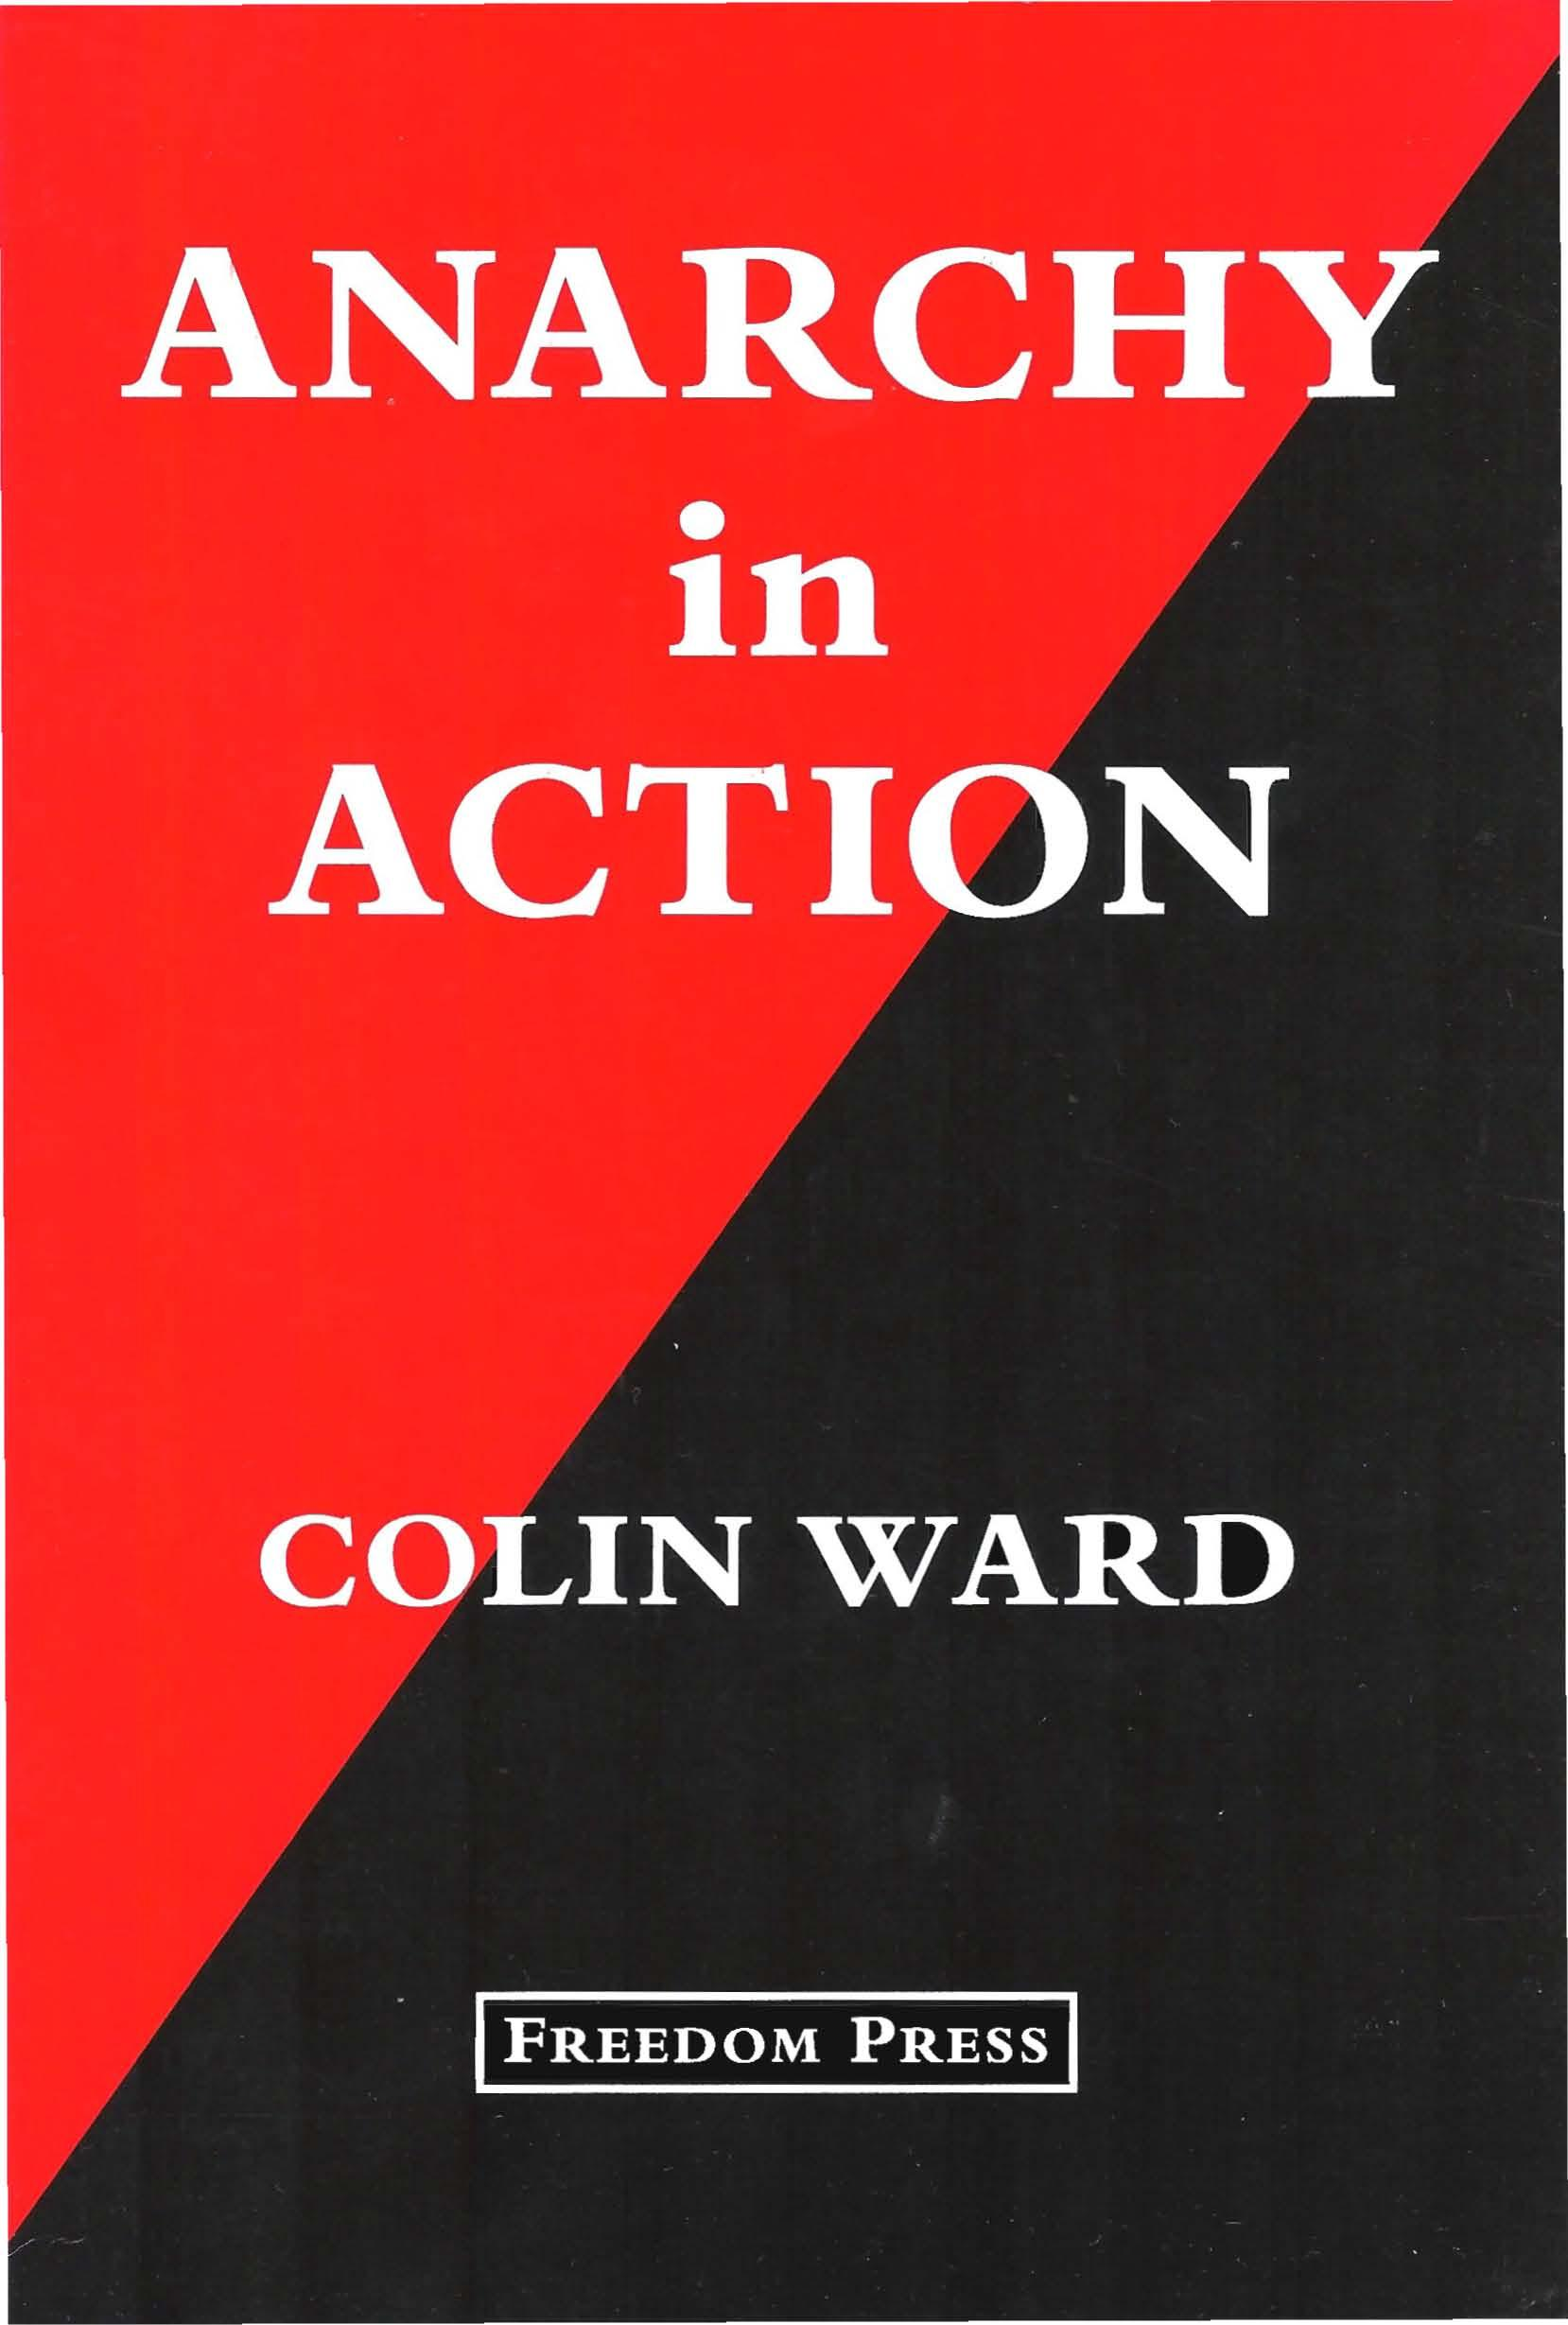 Anarchy in Action | The Anarchist Library